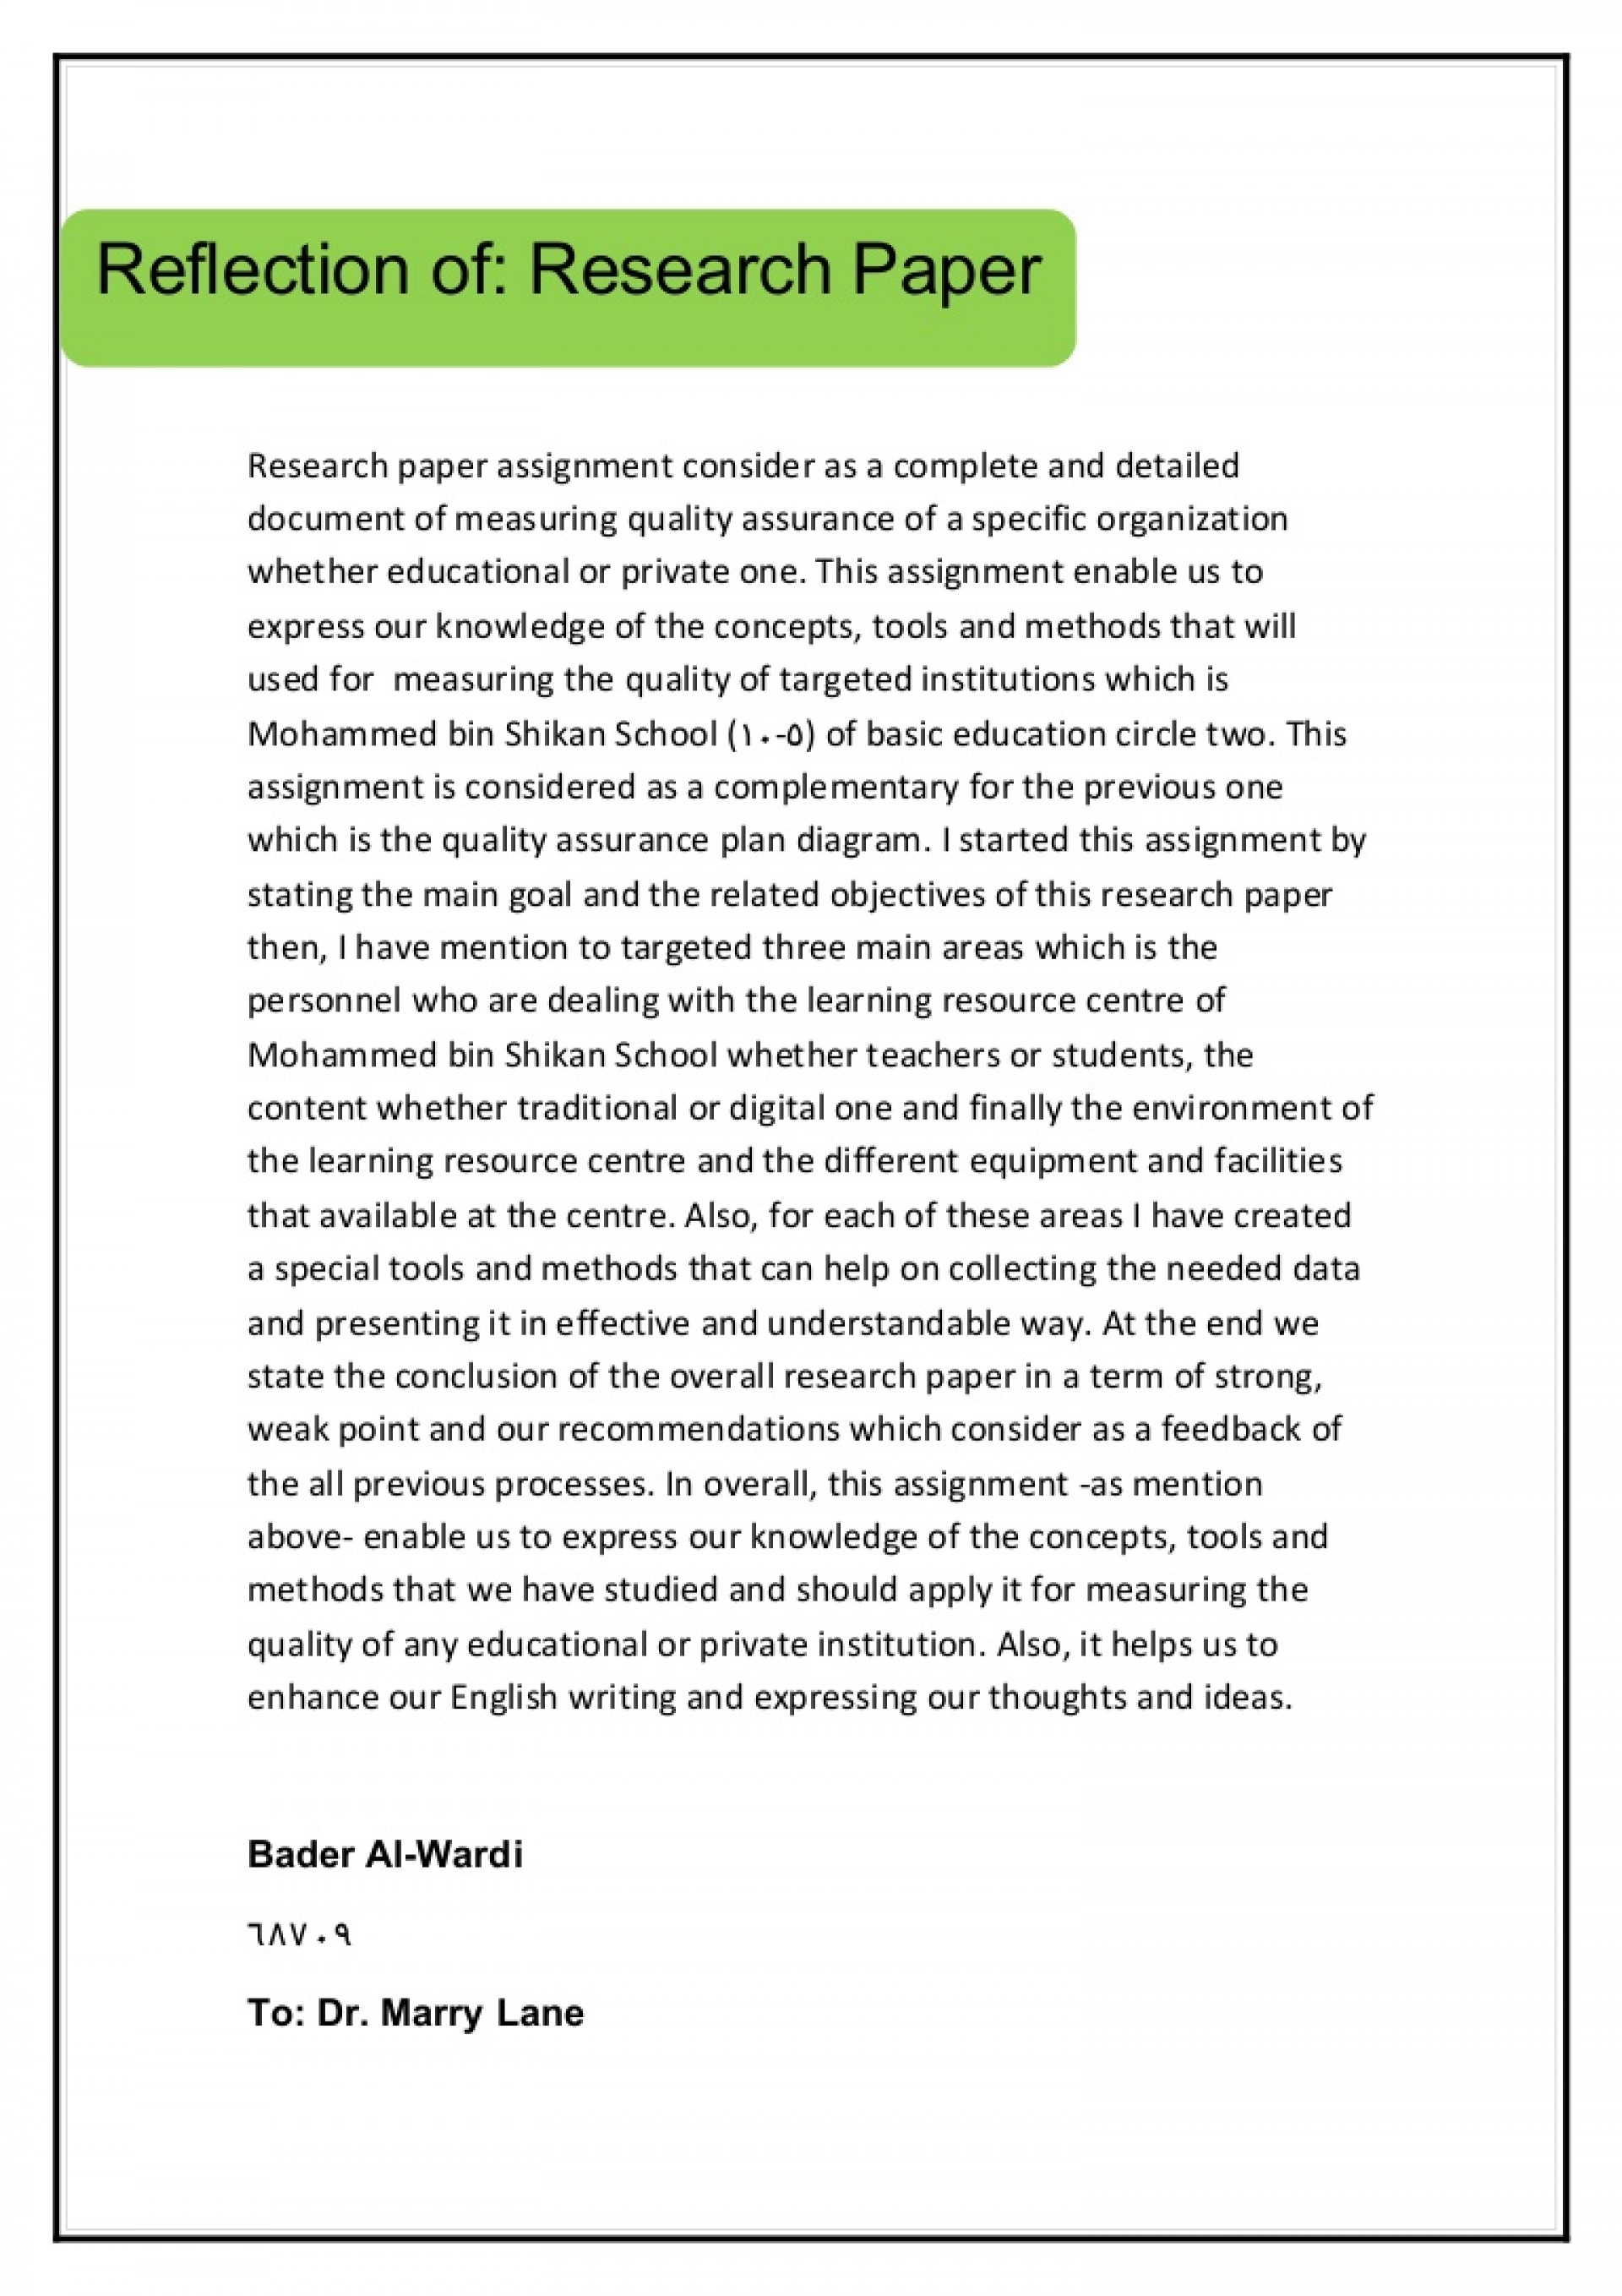 009 Researchpaperreflection Phpapp02 Thumbnail Research Paper Stupendous Generator Thesis Download 1920